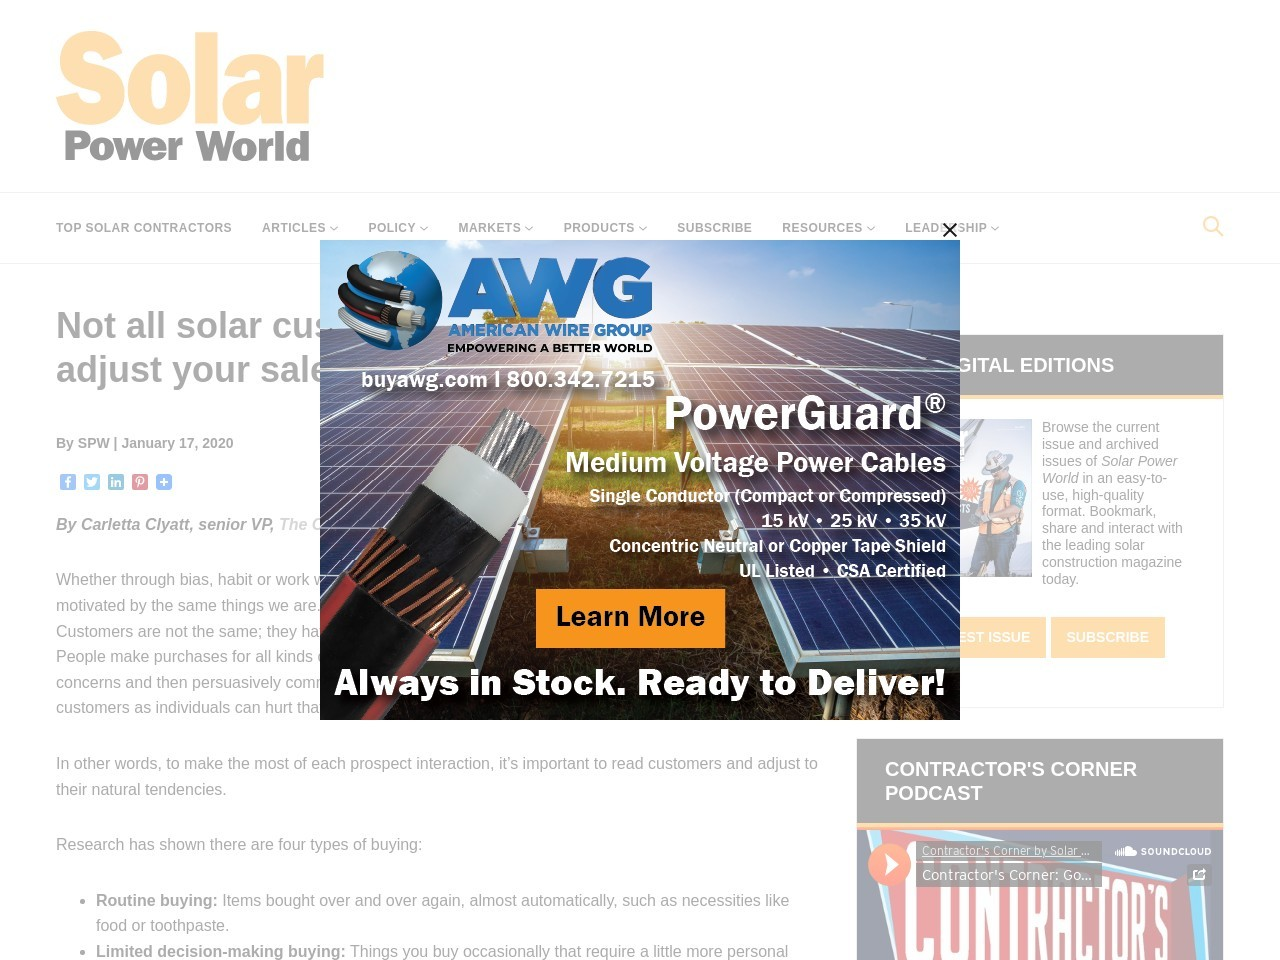 Not all solar customers are the same, so adjust your sales approach to their needs